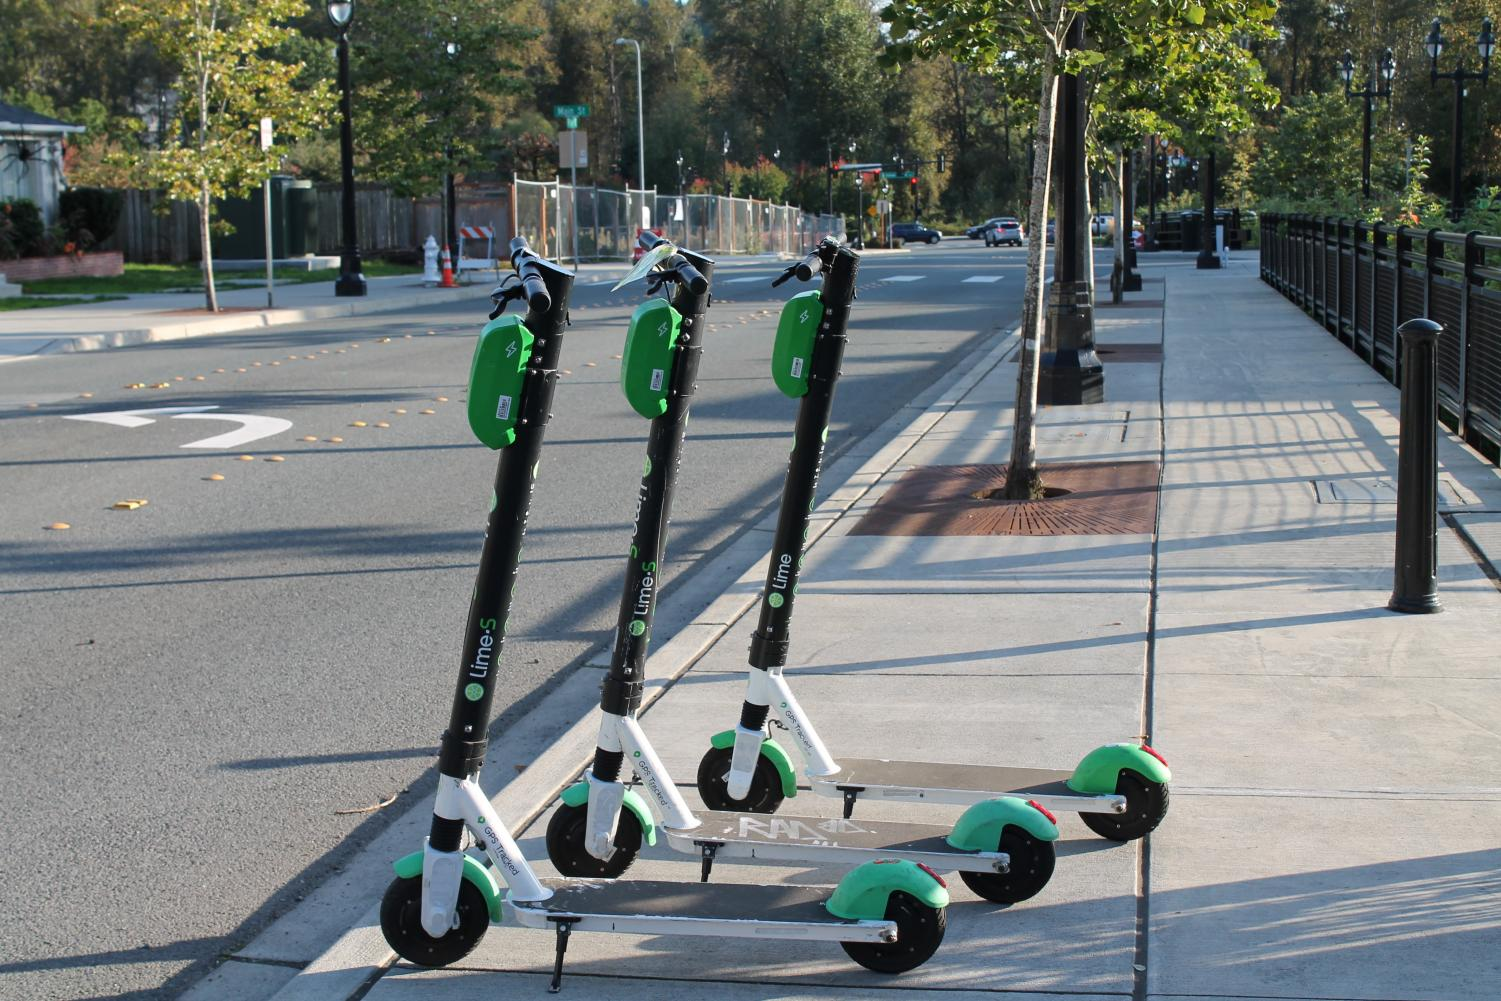 Lime Scooters lined up on the streets of Downtown Bothell, offering an accessible mode of transportation. Photo by Sofia Leotta